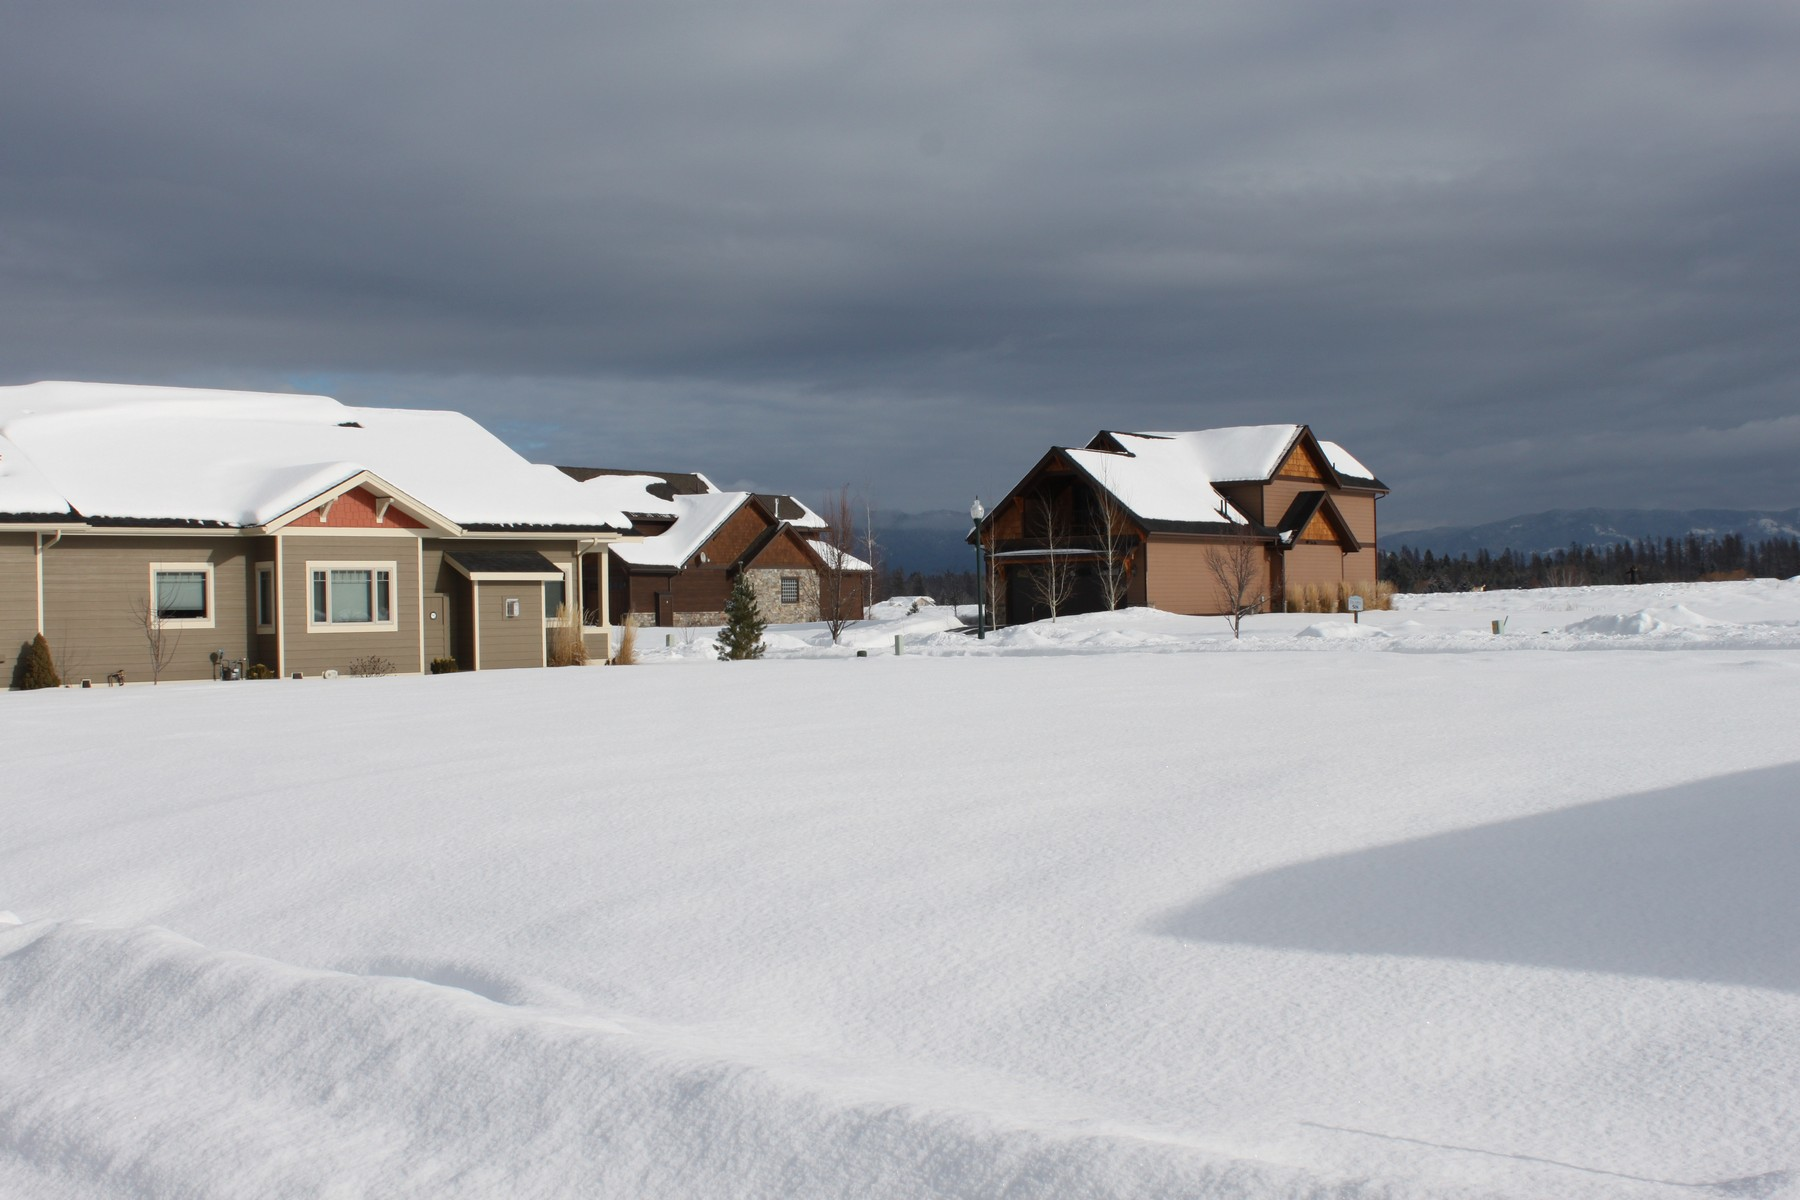 Additional photo for property listing at 5038 Flatwater Dr , Whitefish, MT 59937 5038  Flatwater Dr Whitefish, Montana 59937 United States